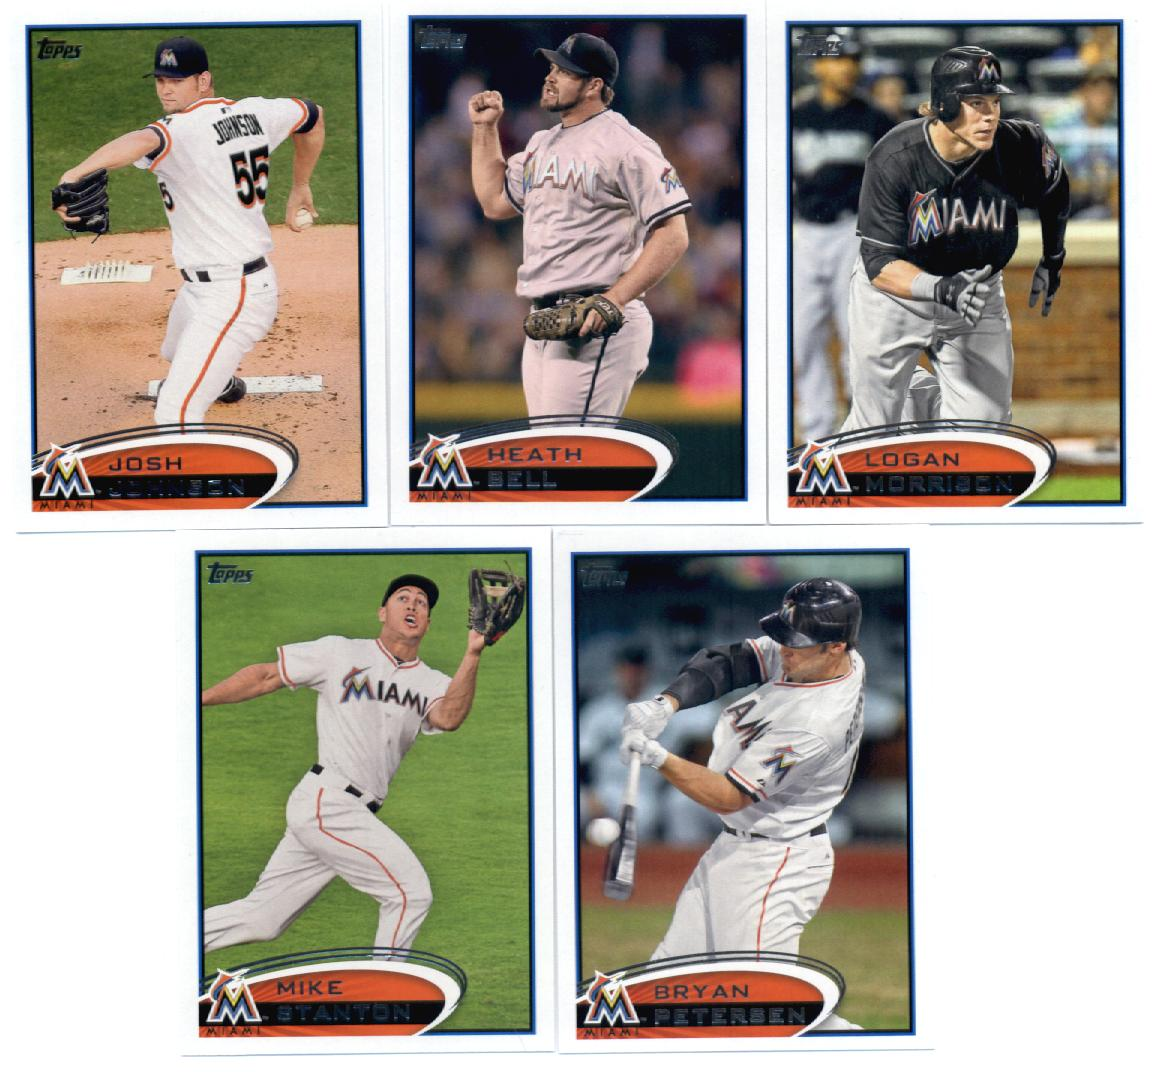 Topps Update 2012 Topps Miami Marlins Update Series Team Set -12 Cards- Solano,Webb,Gaudin,Dobbs,Turner,Cishek,Stanton,Lee,Choate at Sears.com